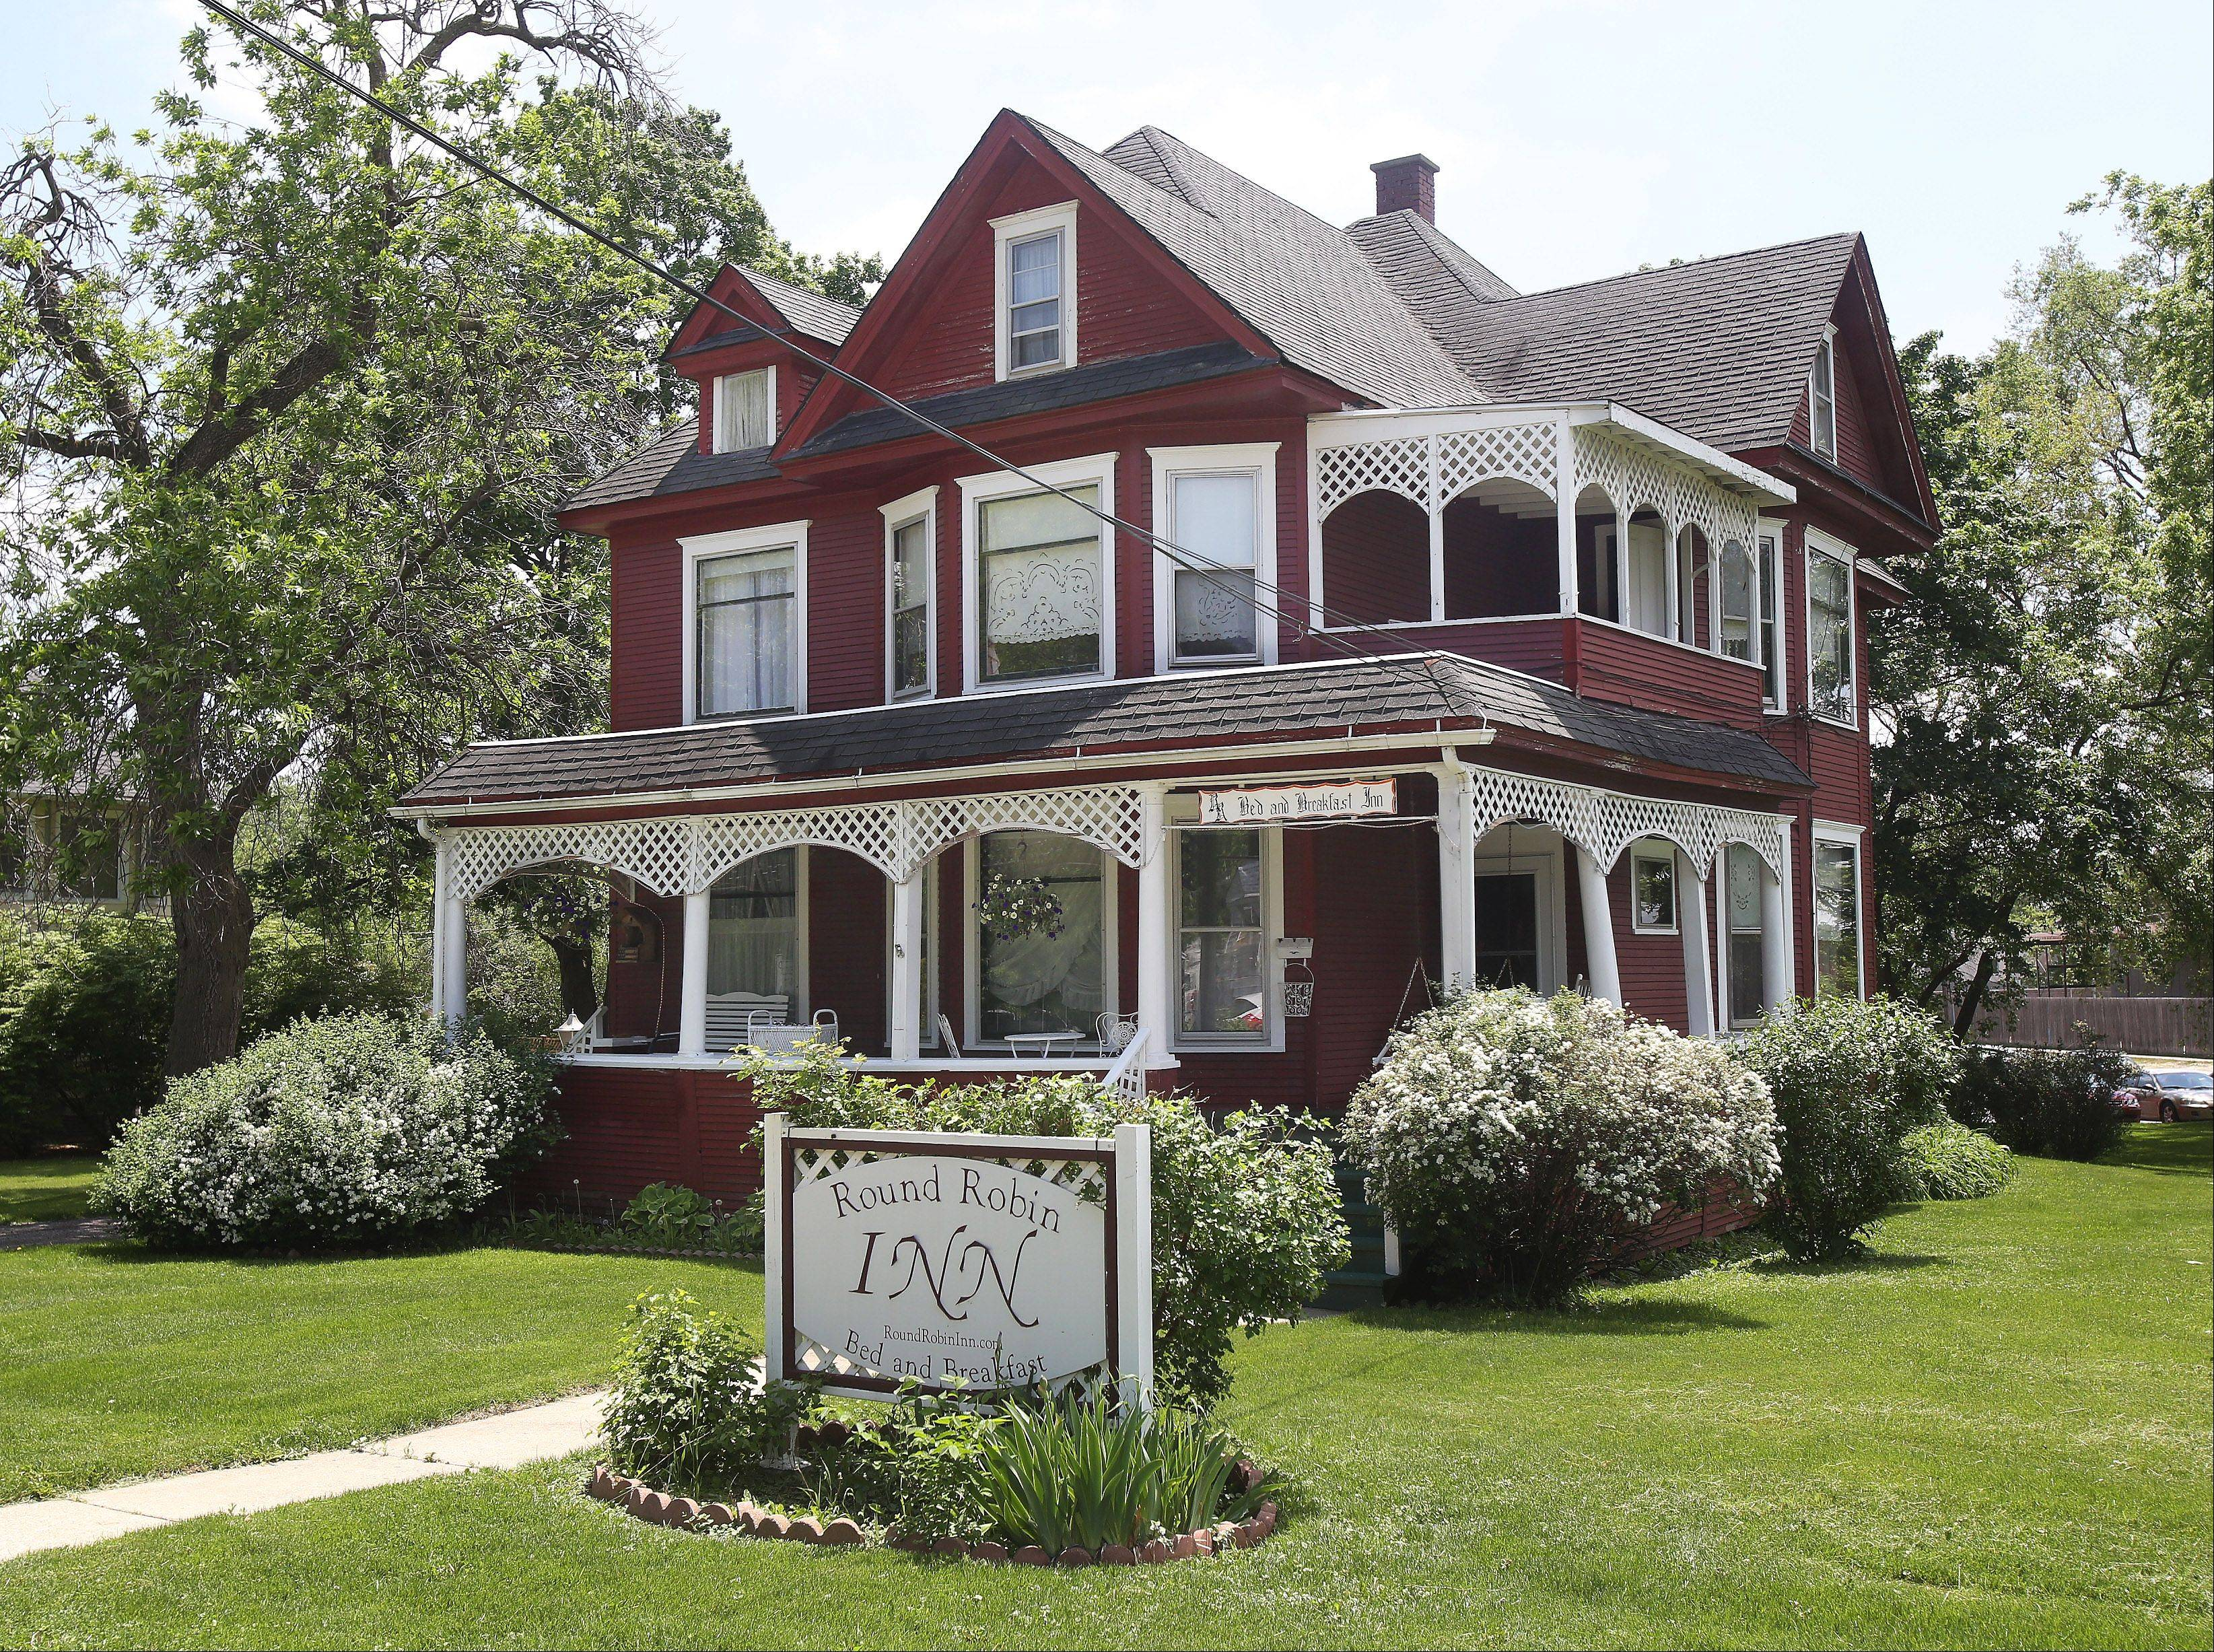 The Round Robin Inn bed and breakfast in Mundelein opened 25 years ago in a home built by Sylvester L. Tripp, who was elected mayor when the community was incorporated as Rockefeller in 1909.